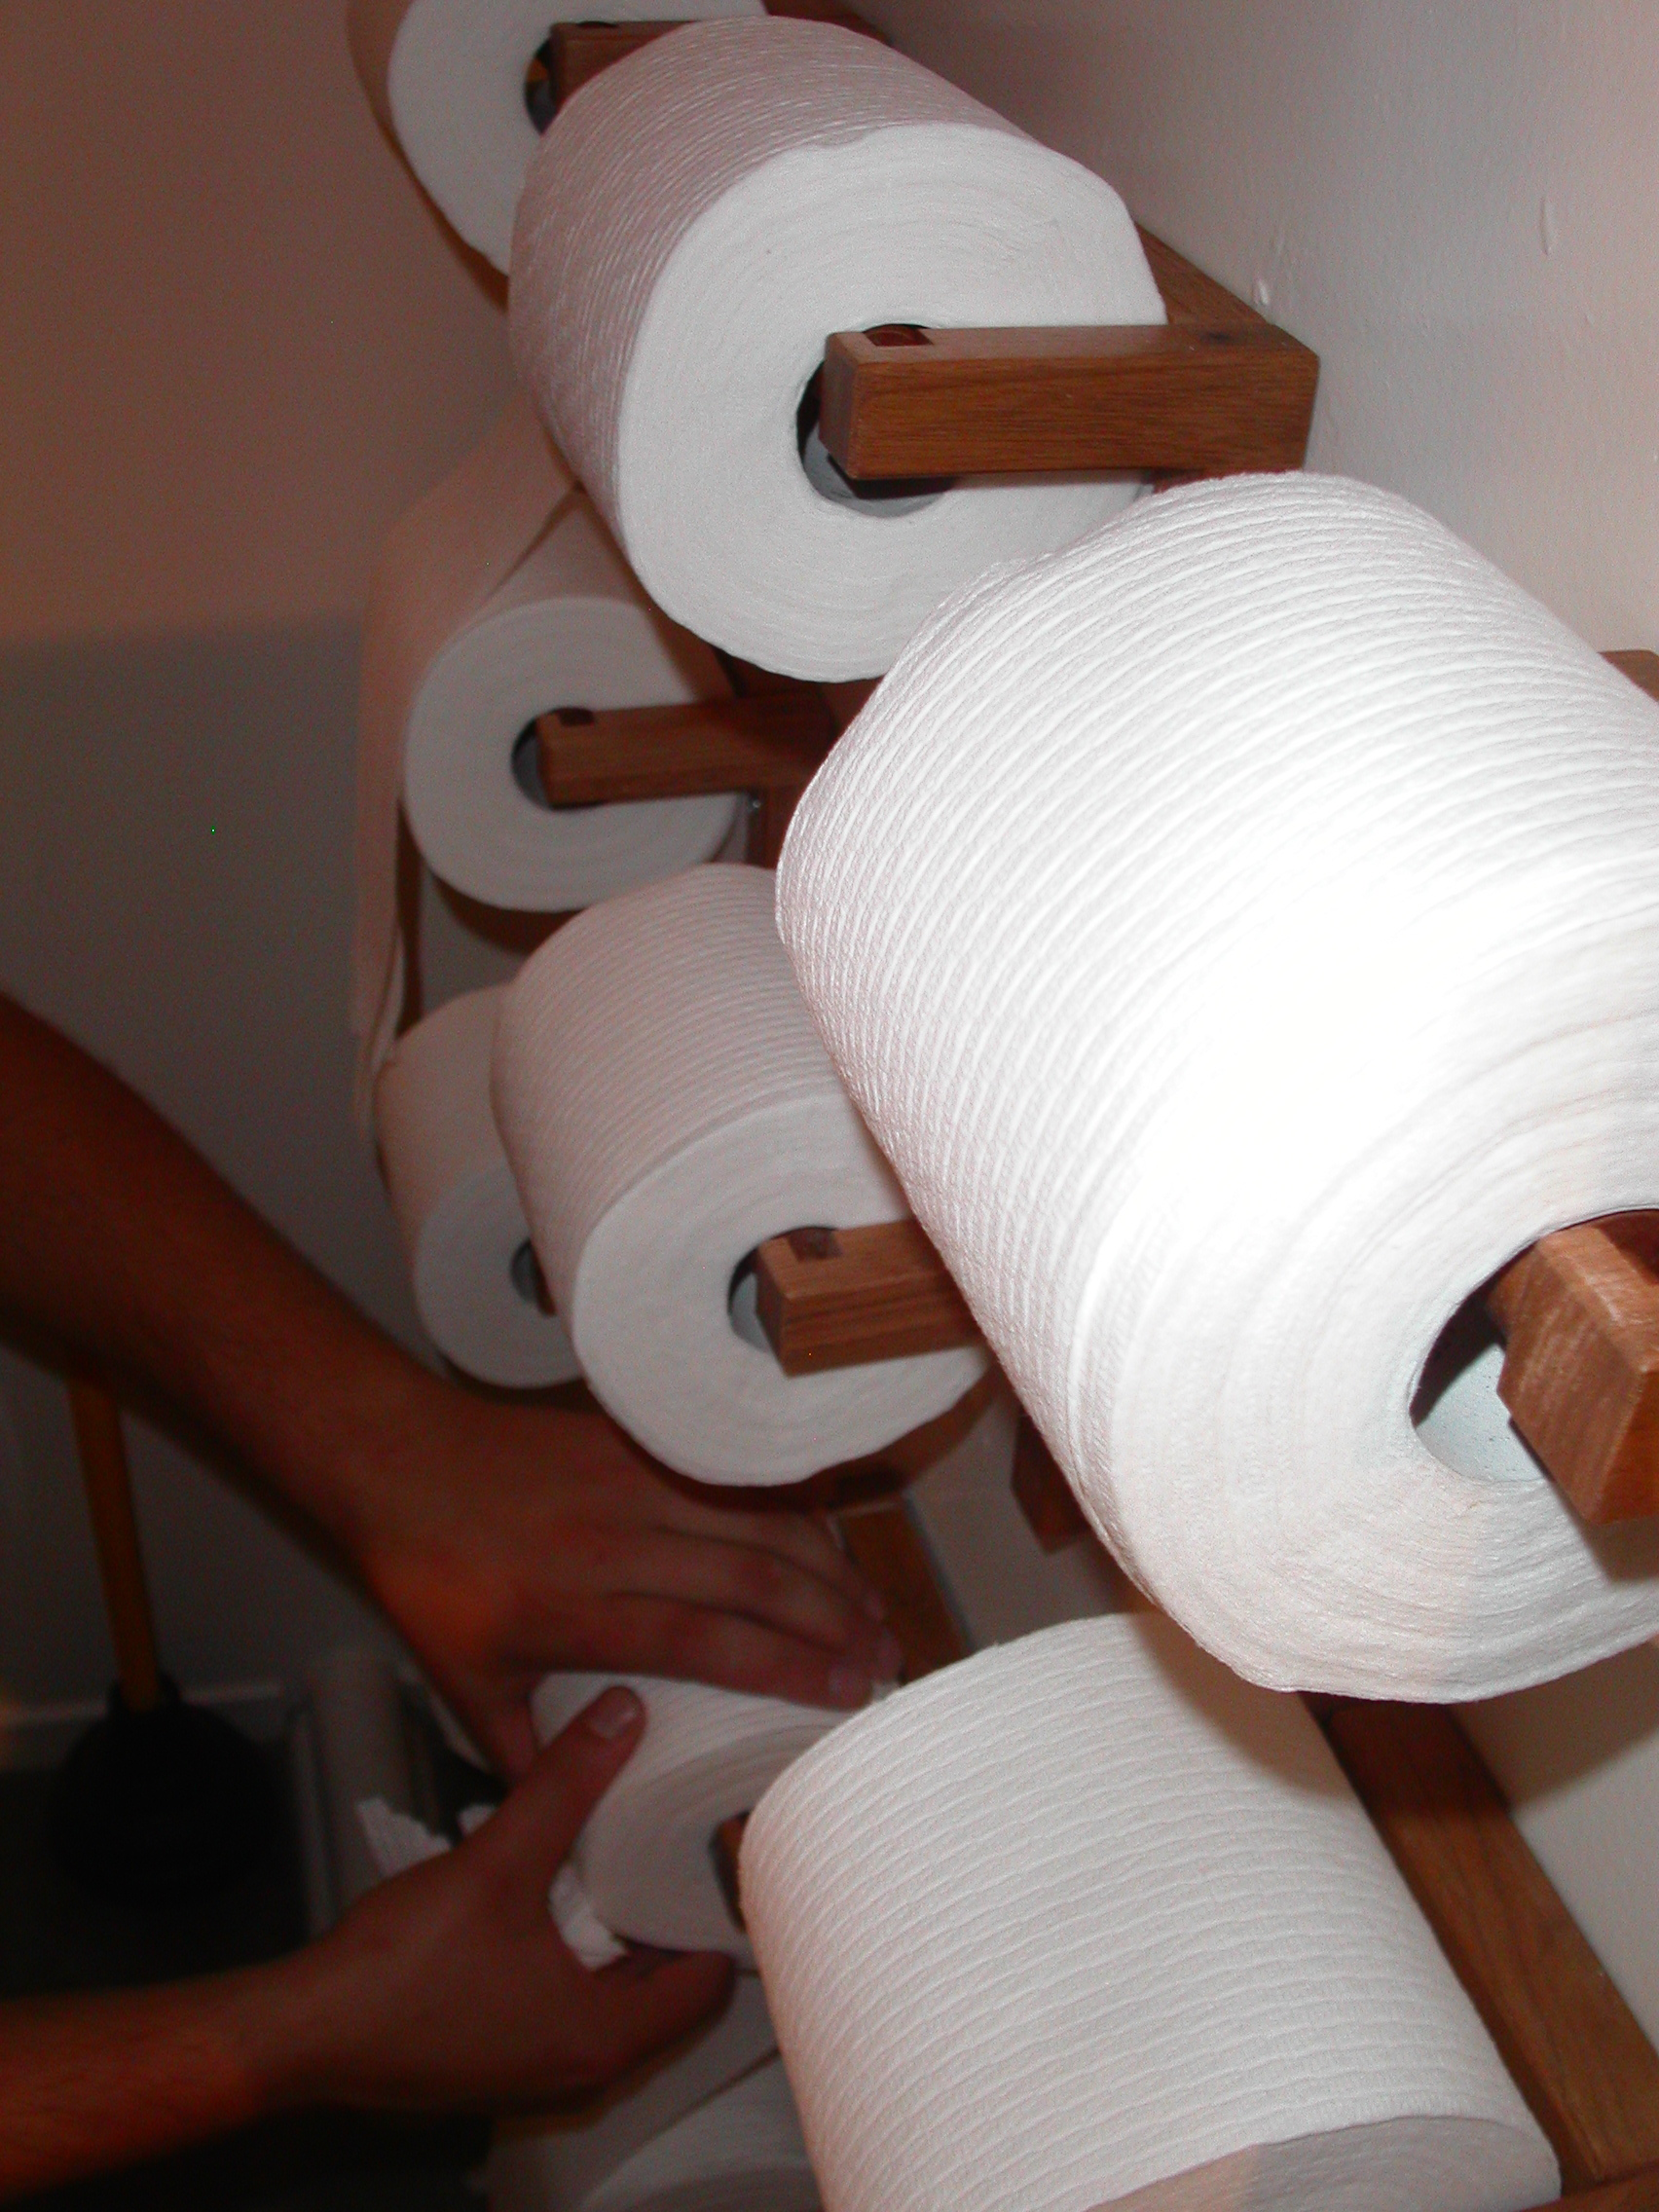 Run out of toilet paper 1/12th as often